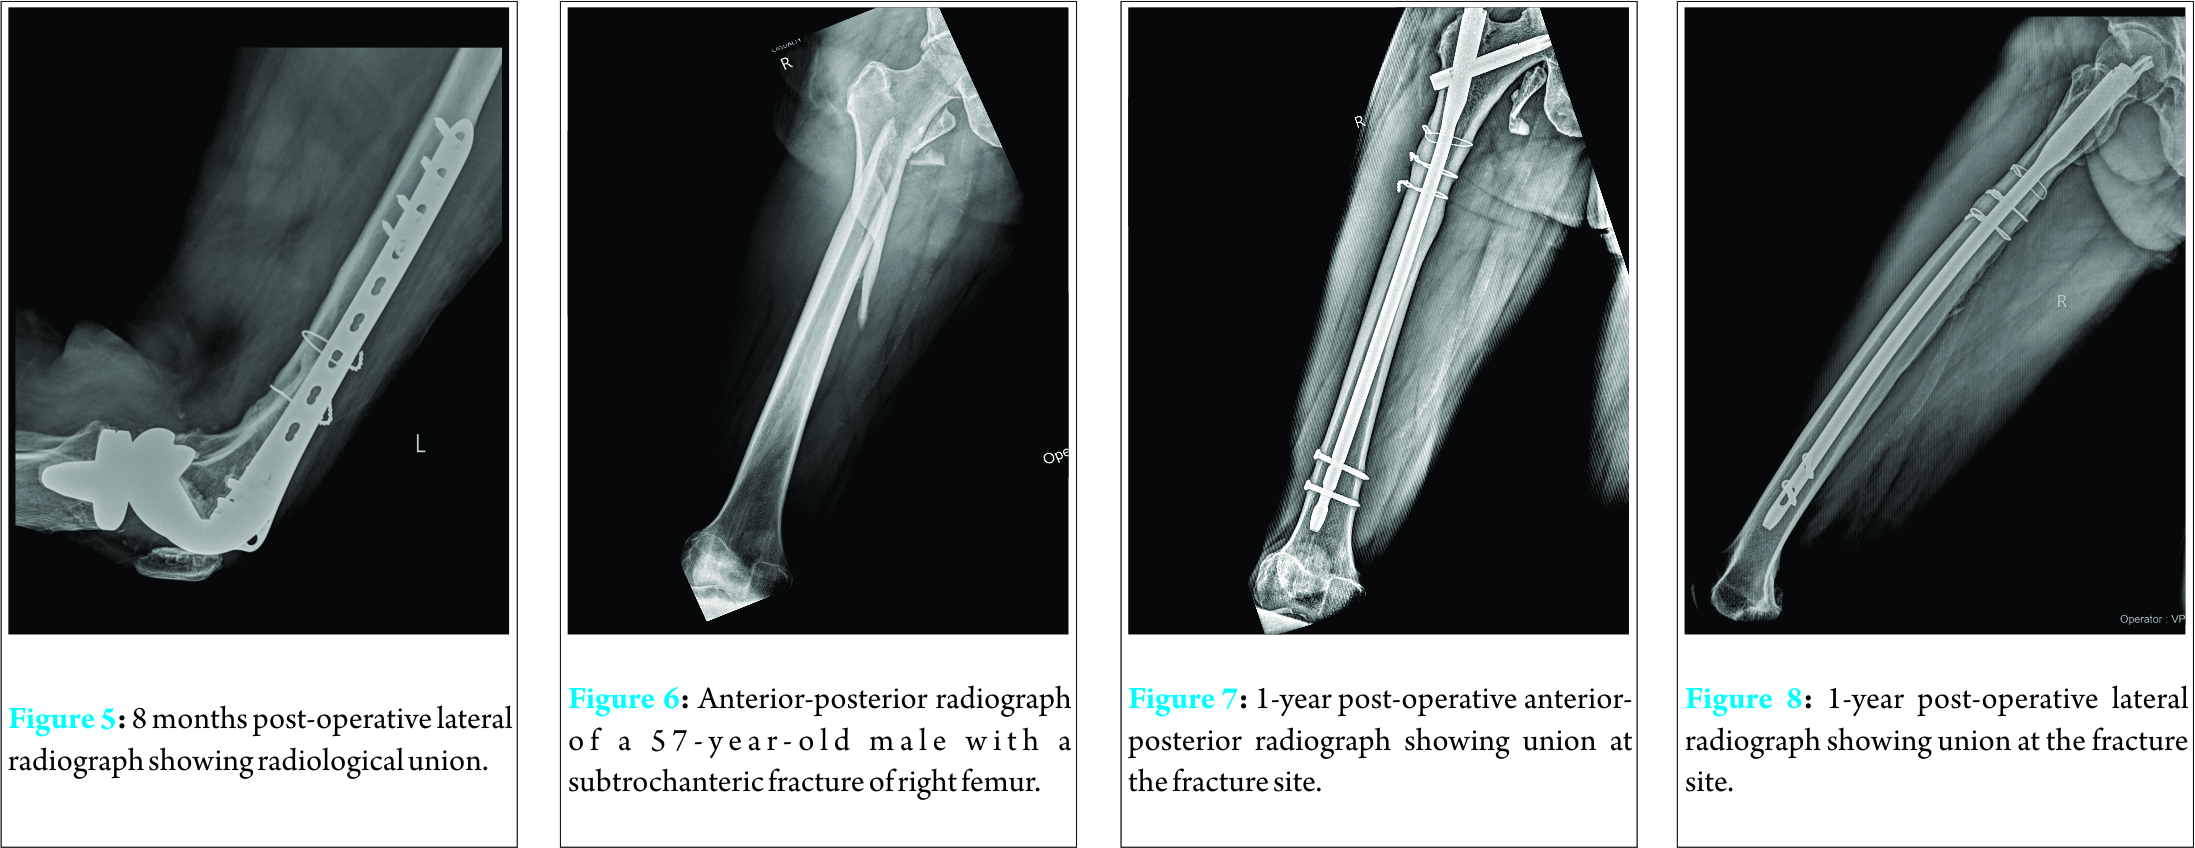 Cerclage Wiring as an Adjunct for the Treatment of Femur ... on